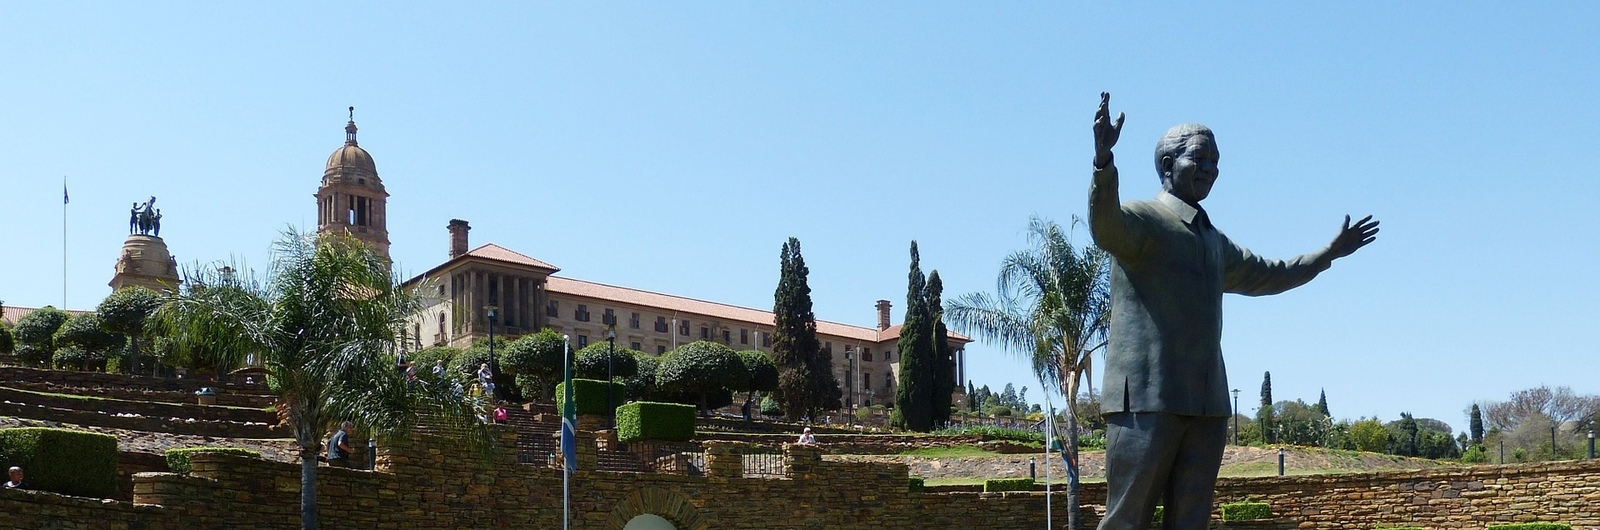 pretoria city header